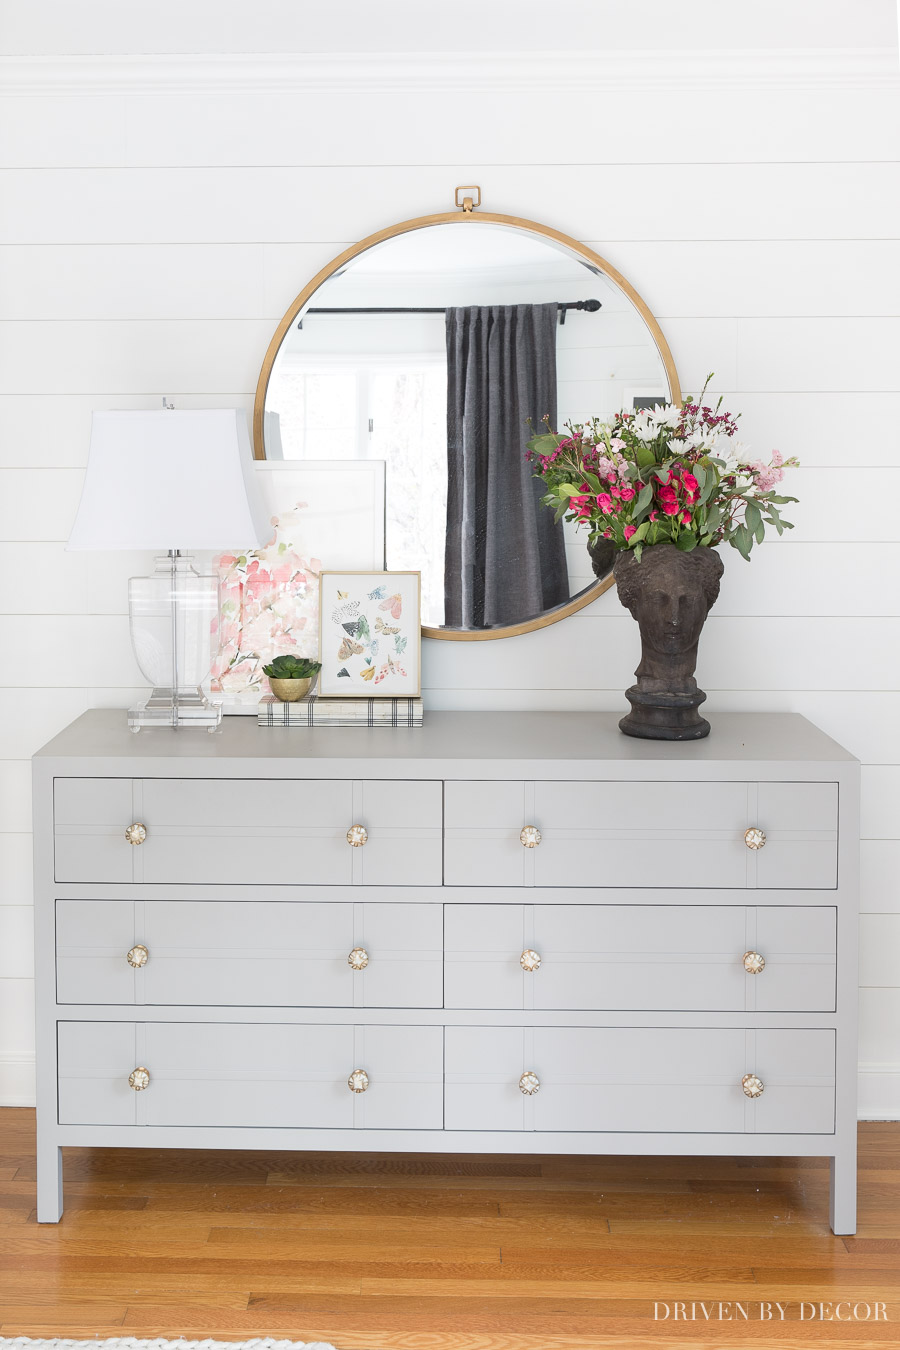 Gray bedroom dresser, large round mirror, and acrylic lamp - perfect for a bedroom!